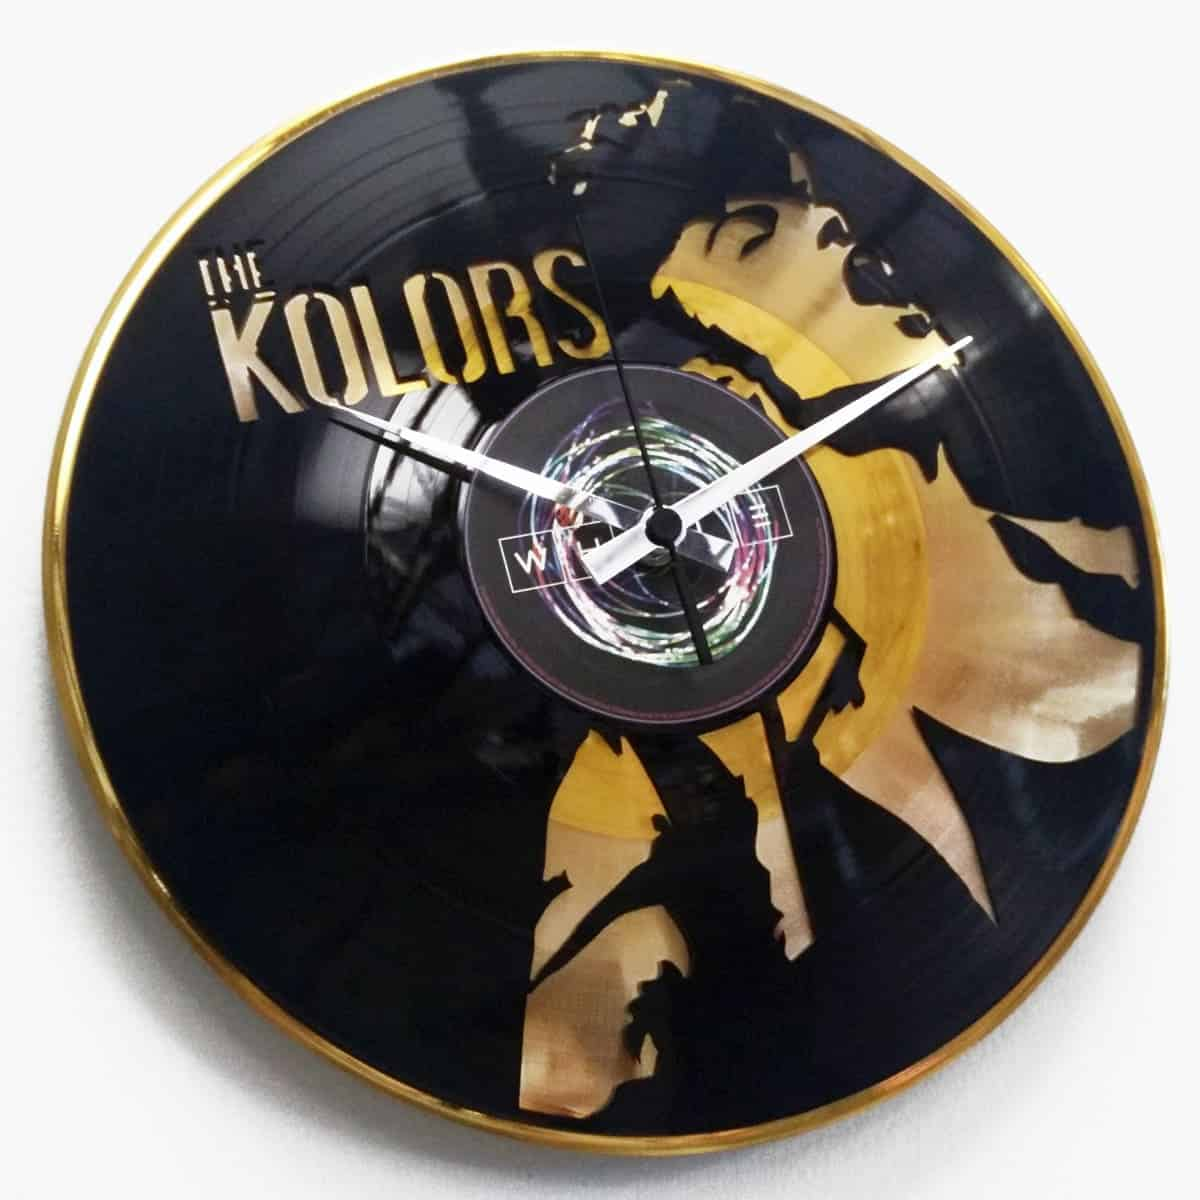 orologio-vinile-the-kolors